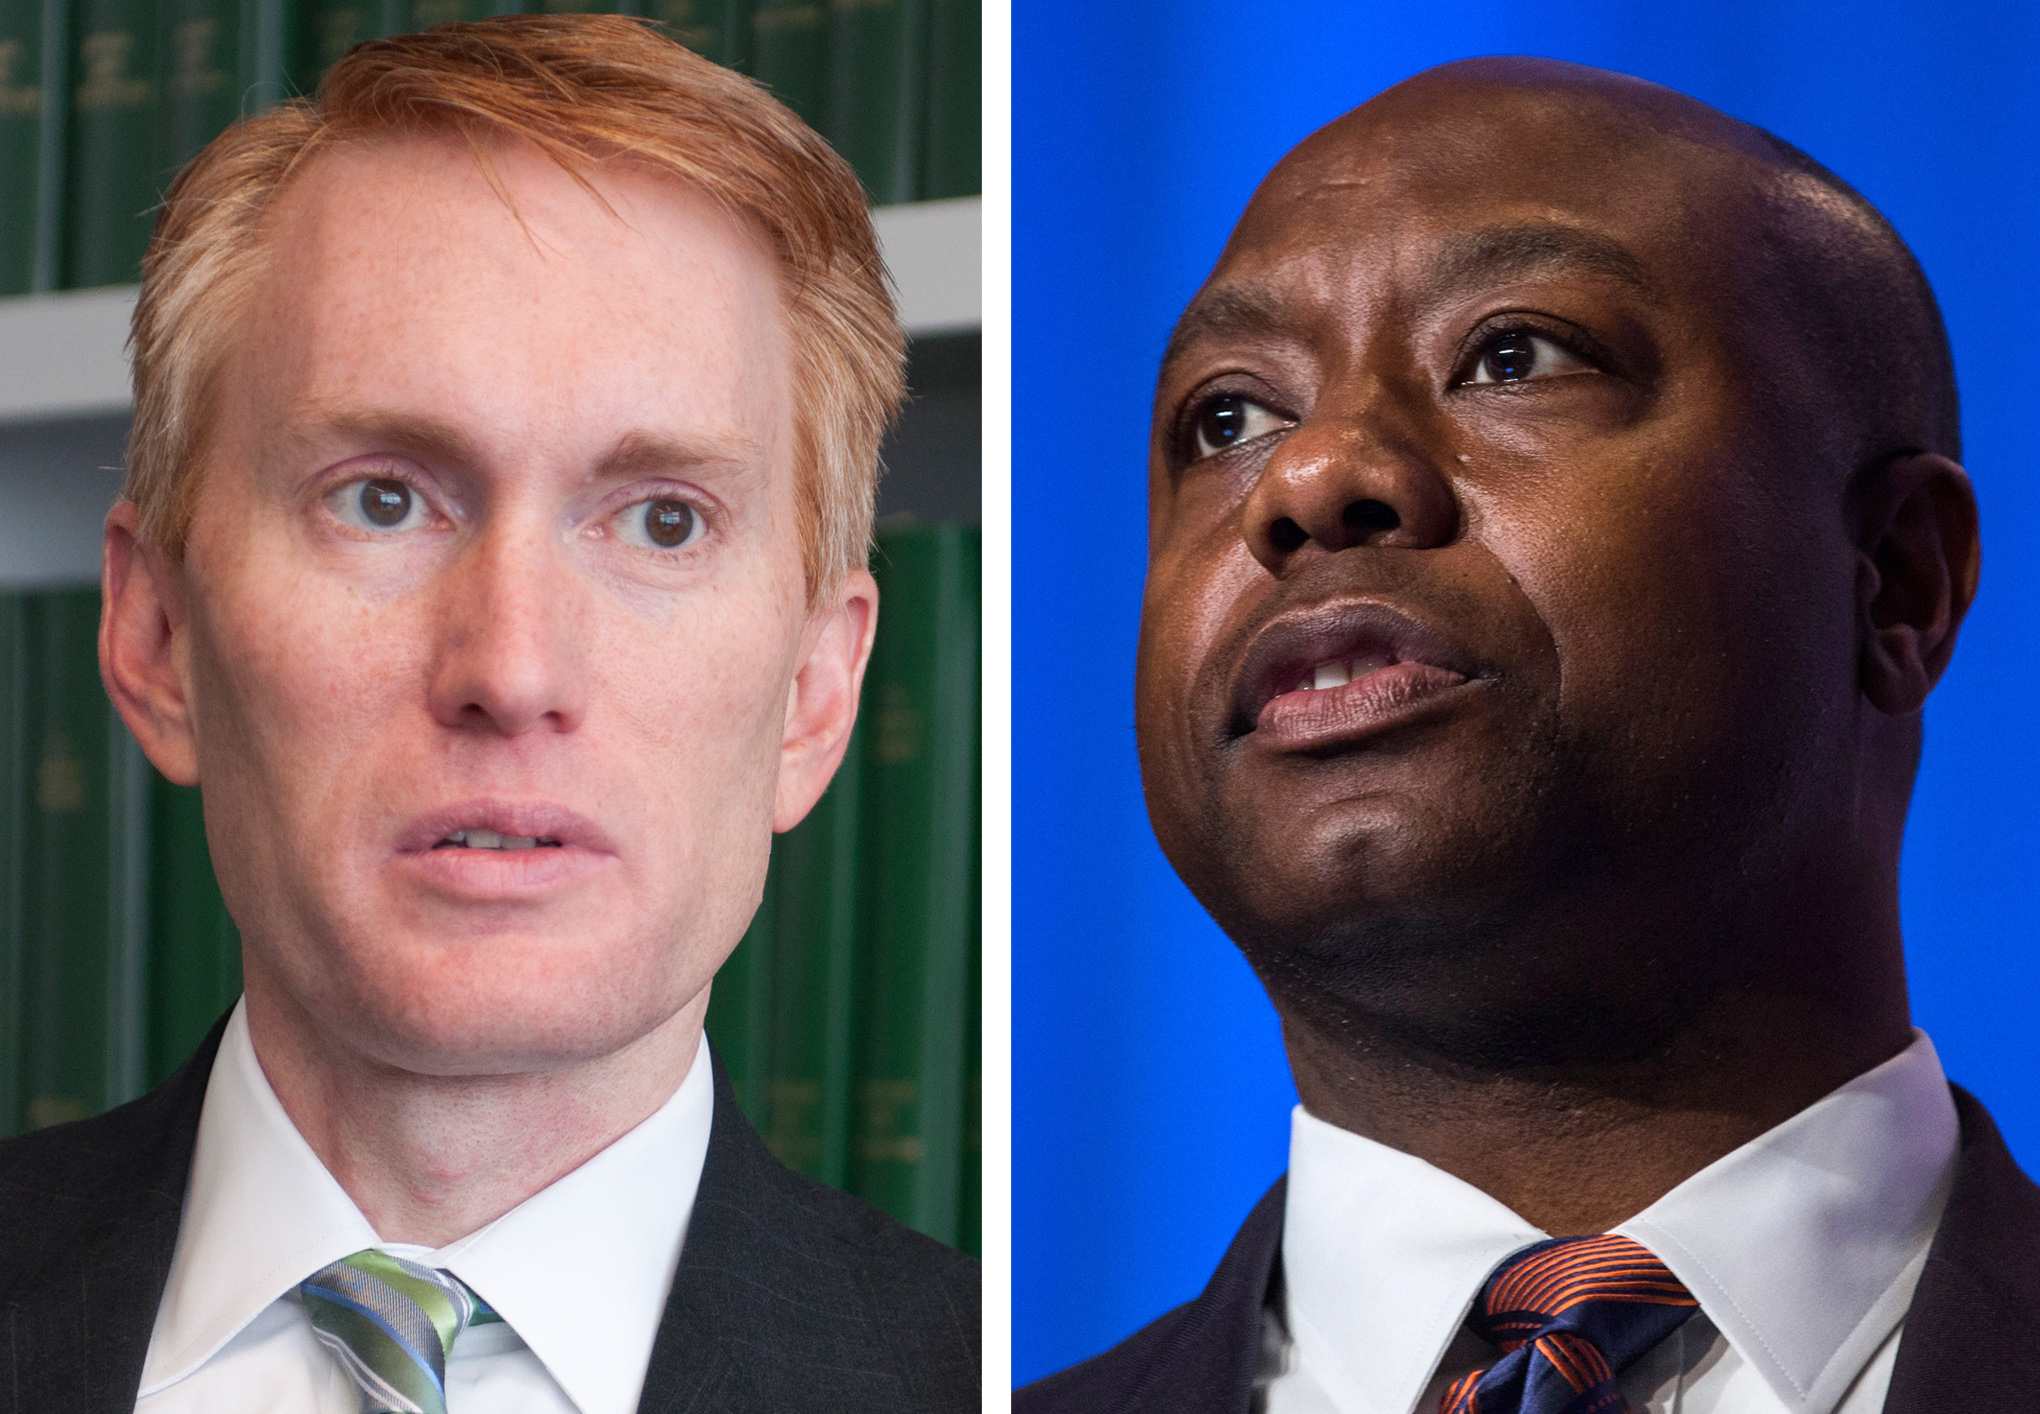 Senators James Lankford, left, and Tim Scott.